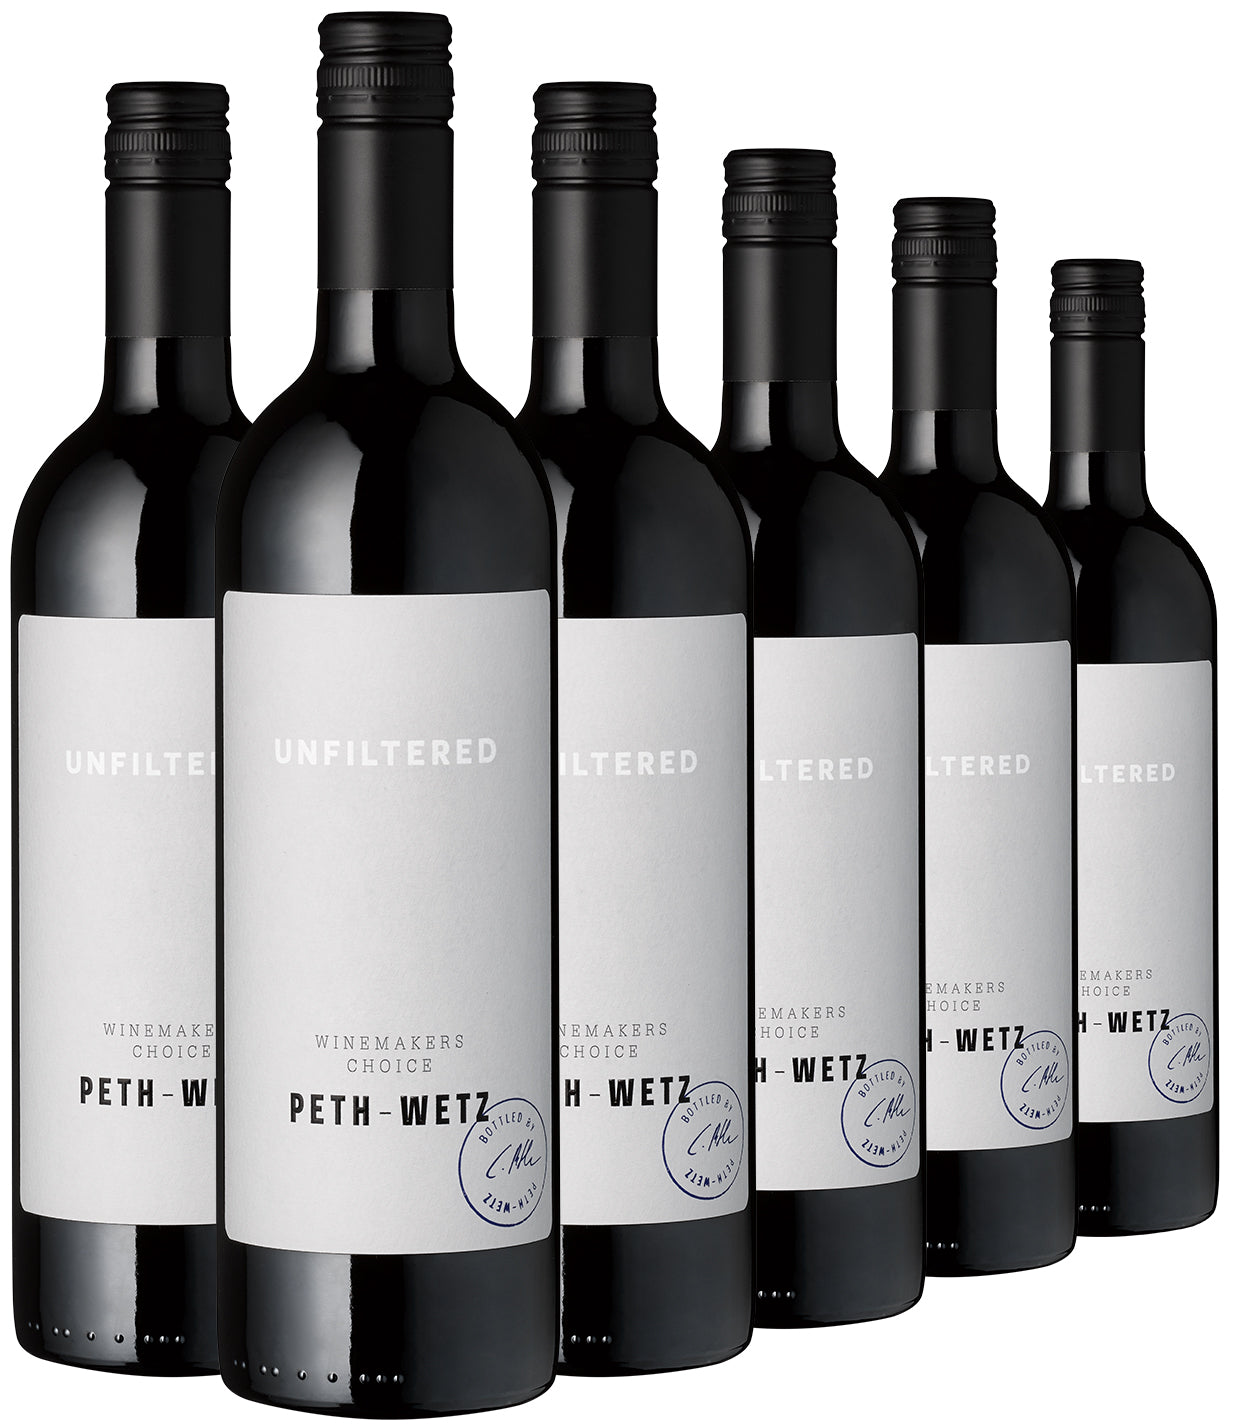 2017 Winemakers Choice, Peth-Wetz, 6er Paket - Bild 1